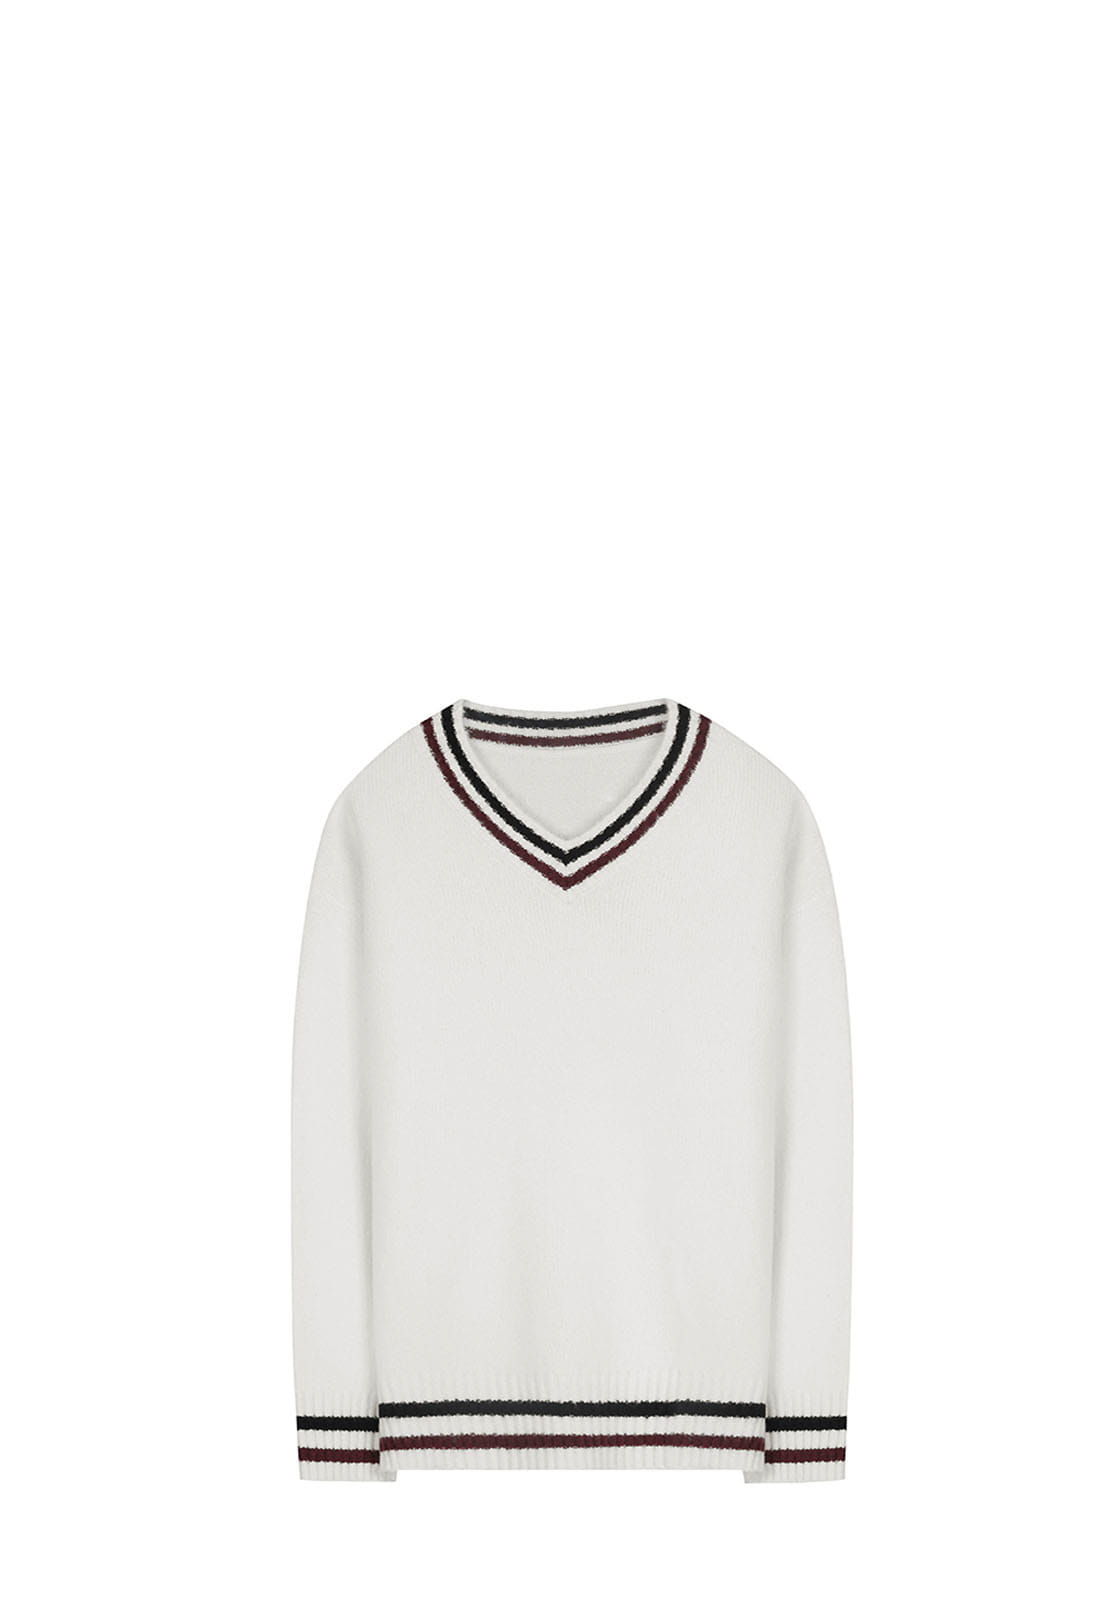 V512 TWO TONE V-NECK KNITWHITE